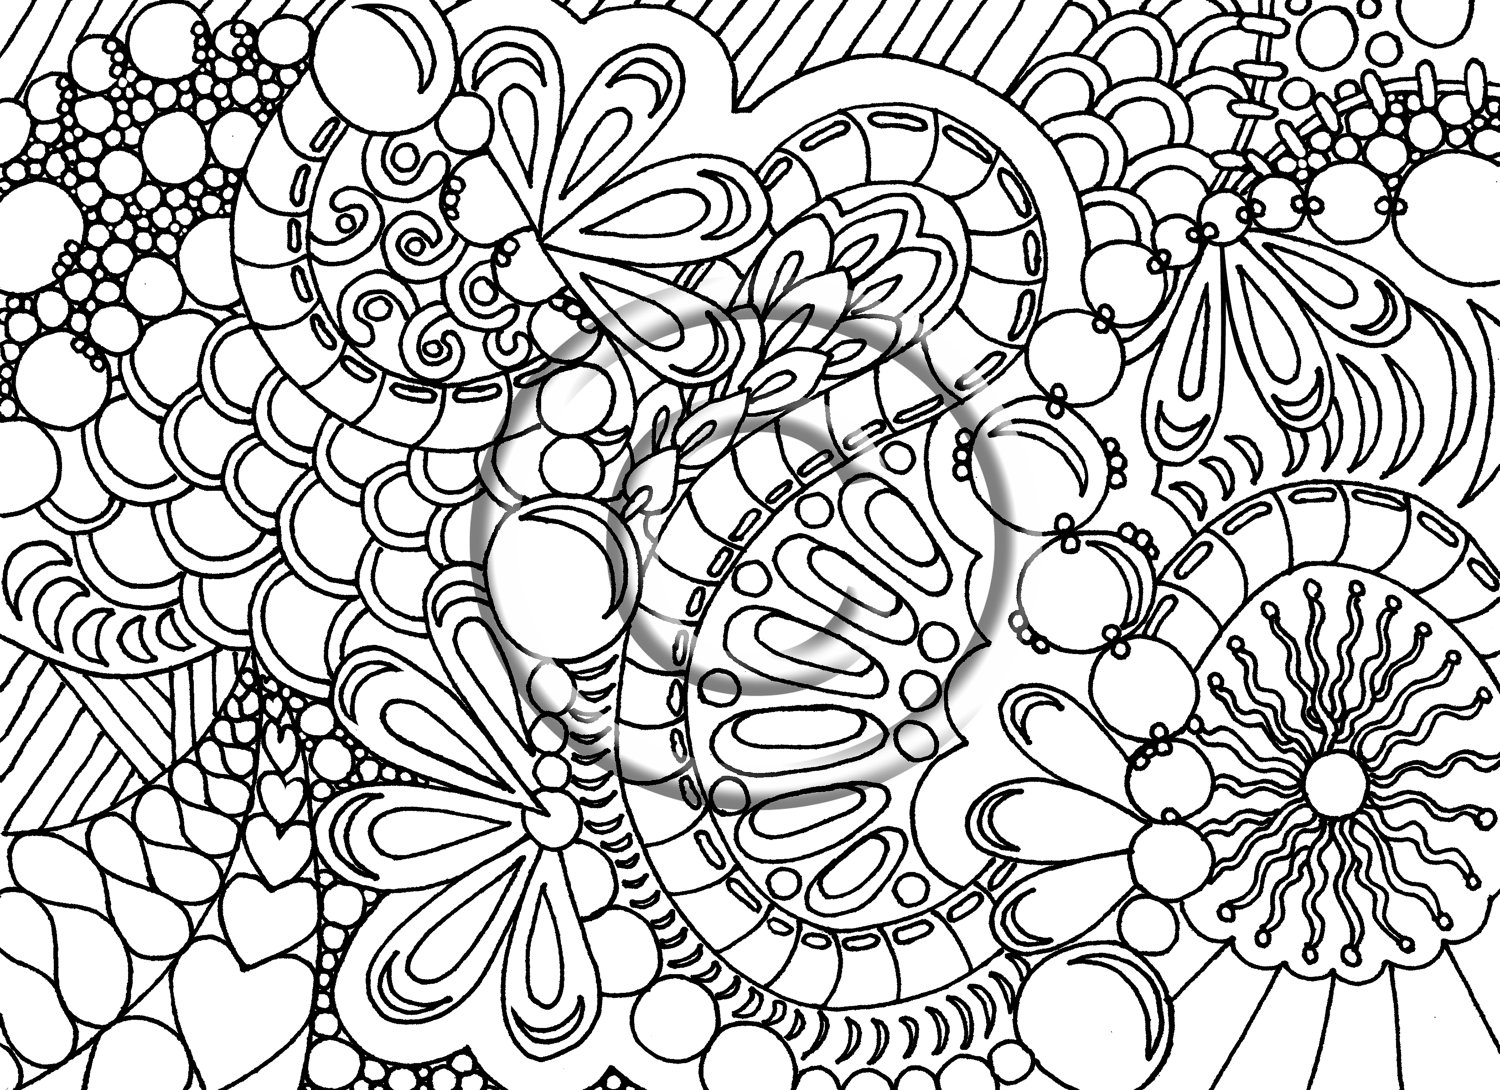 Very Difficult Coloring Pages For Adults at GetDrawings.com ...